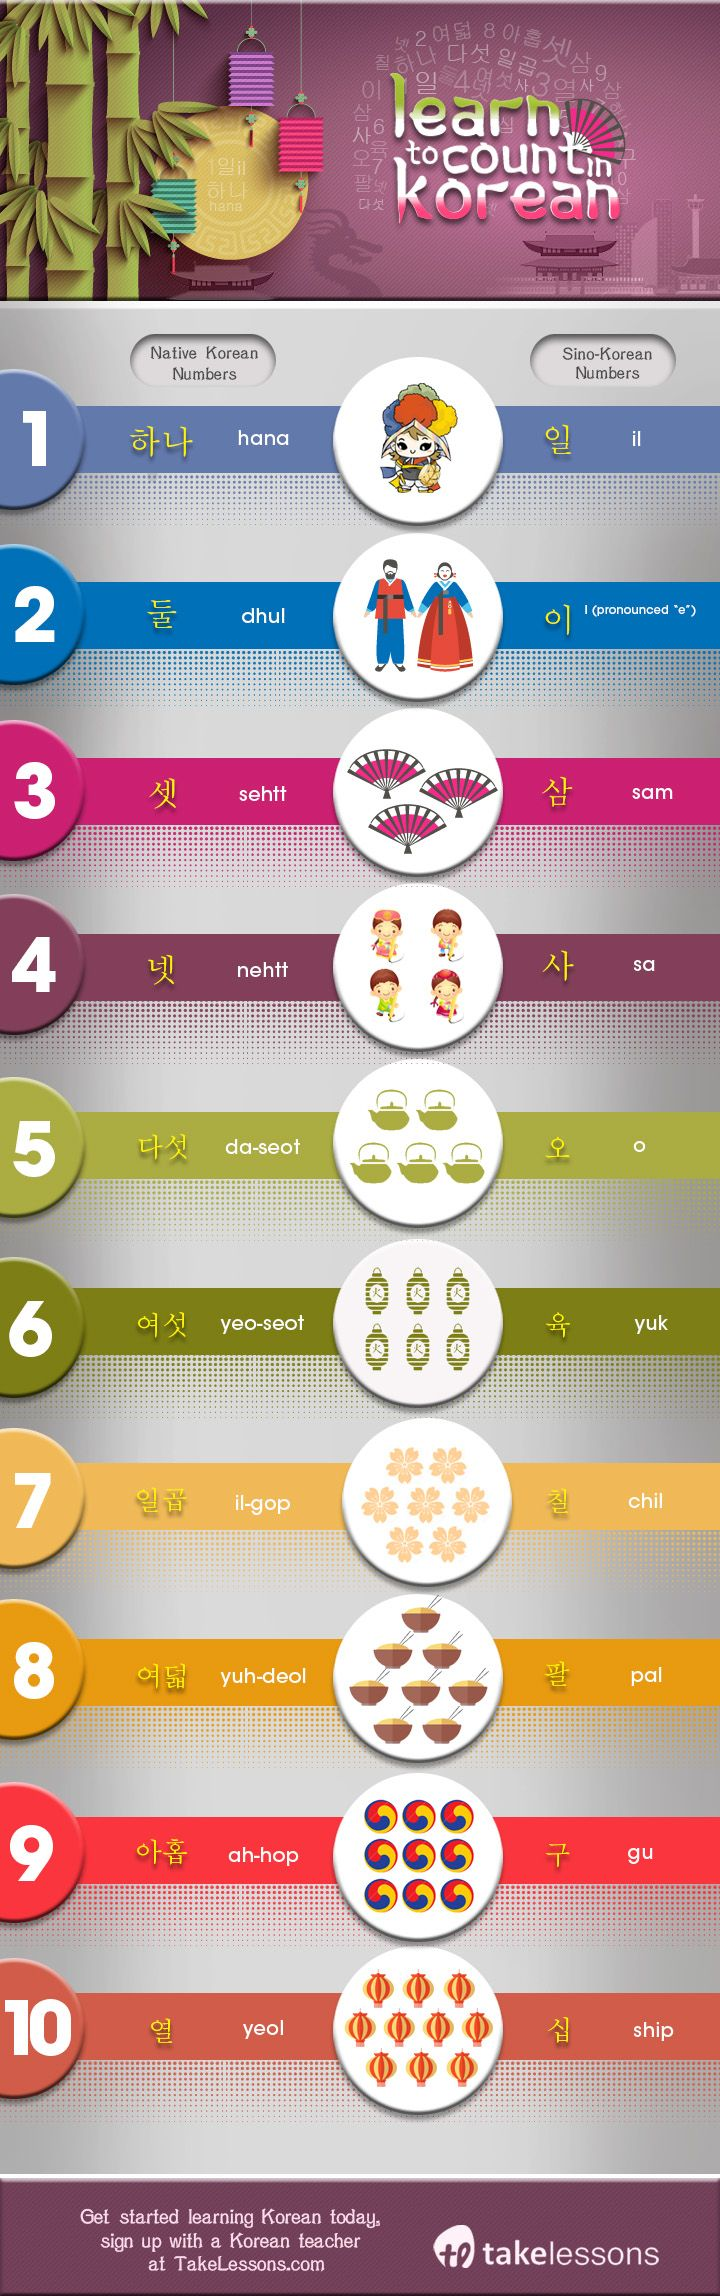 how to learn korean for beginners